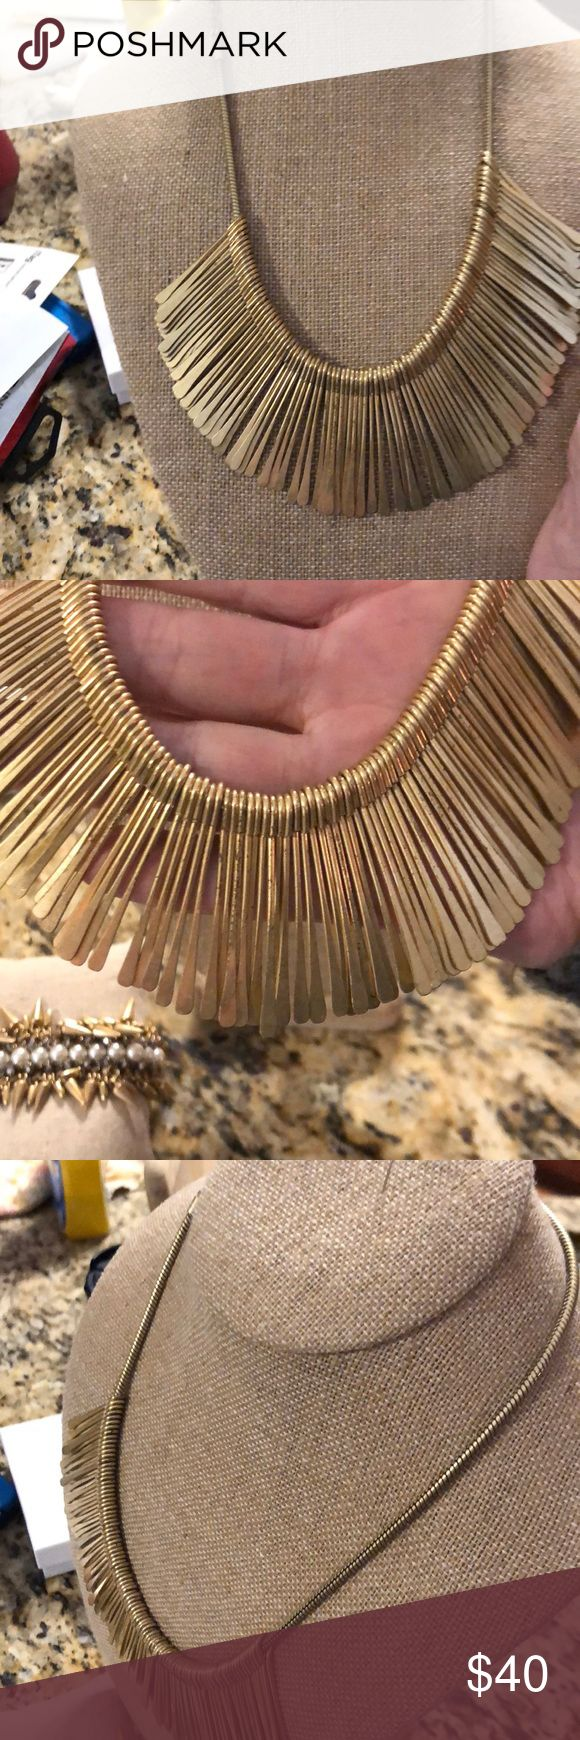 "Stella & Dot Charlotte Essential Fringe This piece has been displayed at Hostess Shows and tried on. I have cleaned & polished this piece in a ""UltraSonic Jewelry Cleaner Machine""..  The Essential Fringe is a favorite to dress up or down.  The piece is a ""brushed gold"" so it will not be smooth. Stella & Dot Jewelry Necklaces"